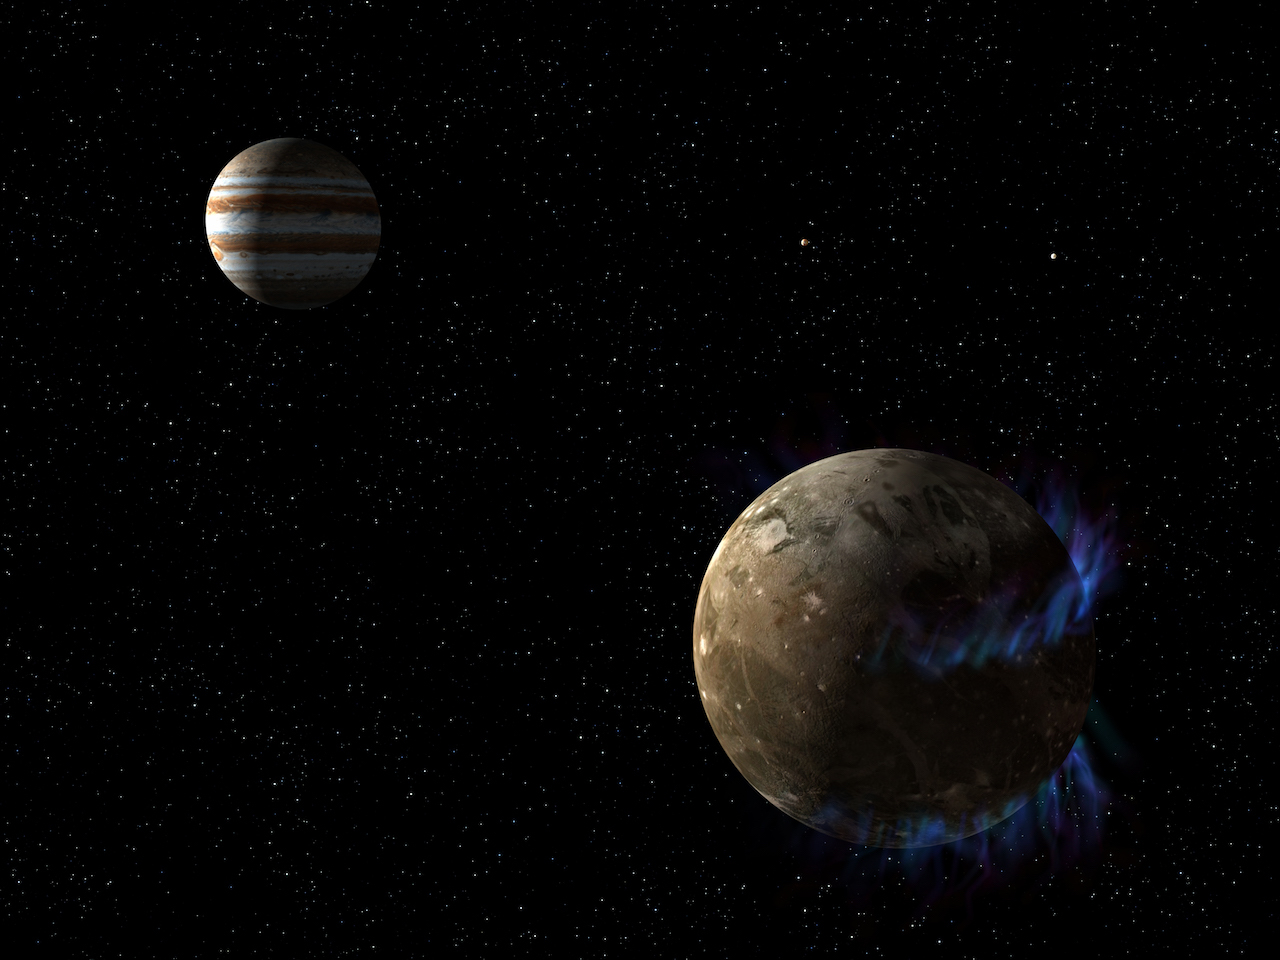 jupiter and ganymede in space with bright auroras surrounding ganymede